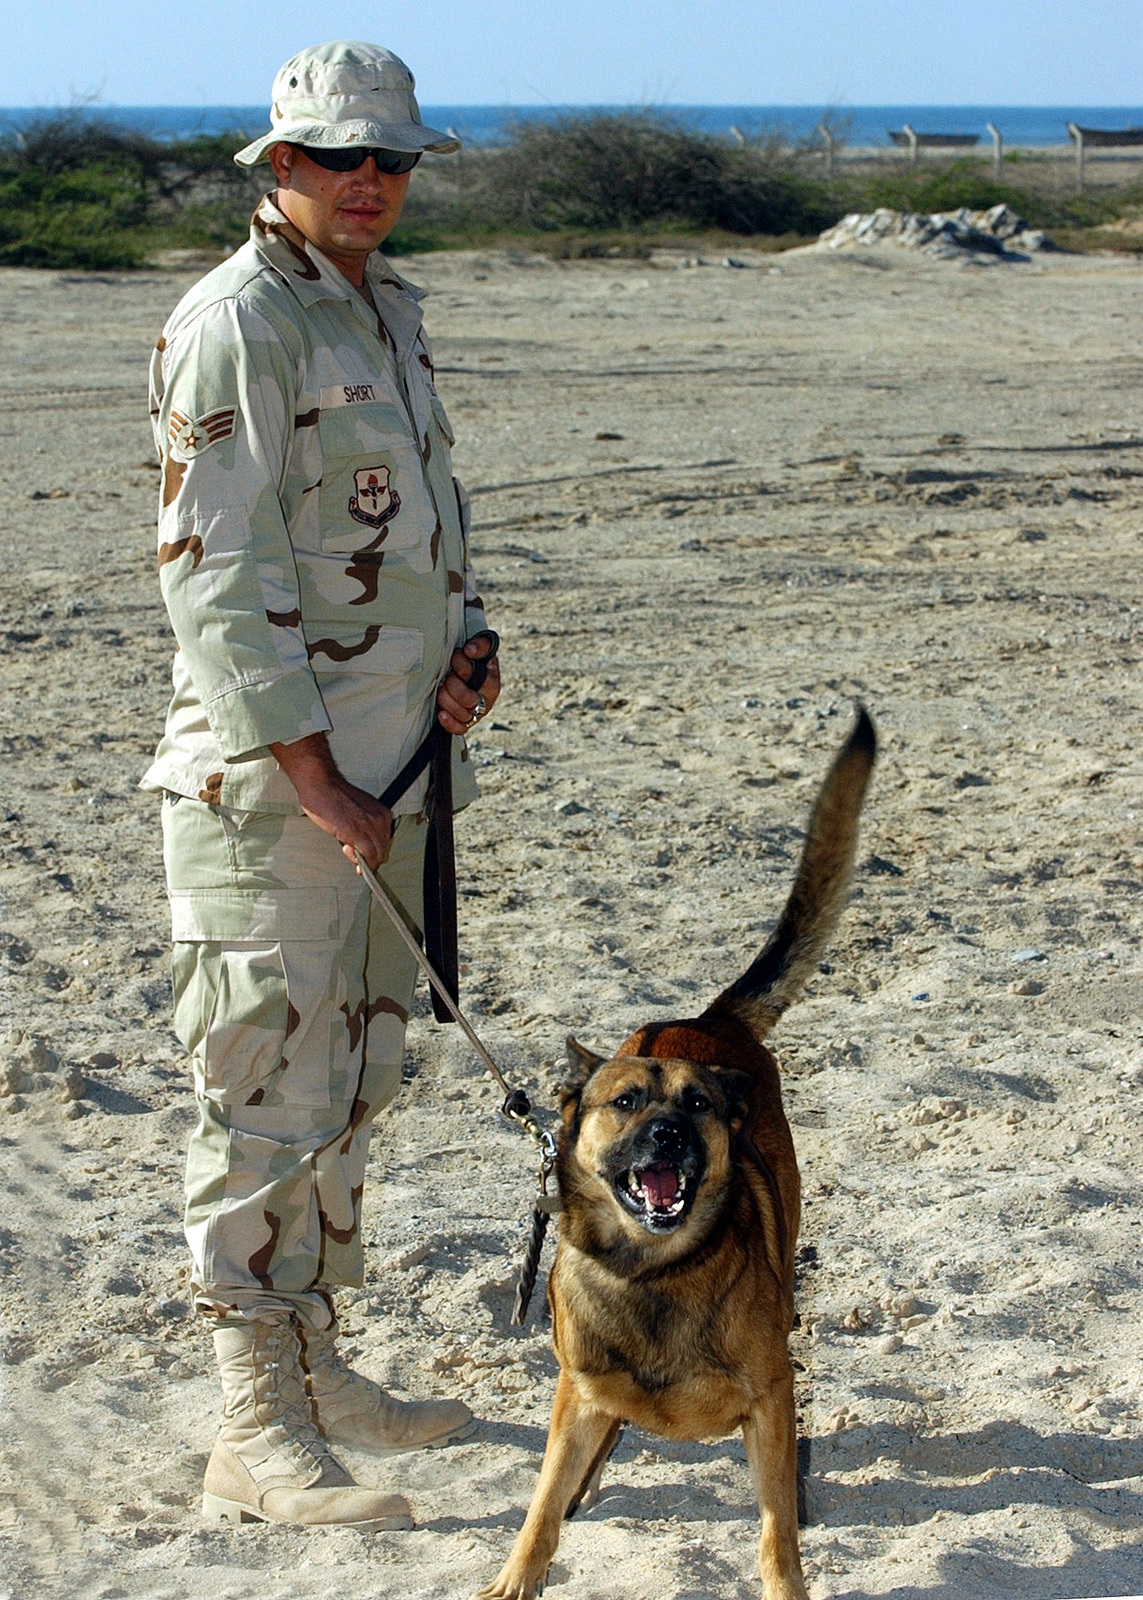 US Air Force (USAF) SENIOR AIRMAN (SRA) Daniel Short, Dog Handler, 321st Expeditionary Security Forces Squadron, and his Belgian Malinois, Carlos prepare to do a vehicle search at a forward-deployed location during Operation ENDURING FREEDOM